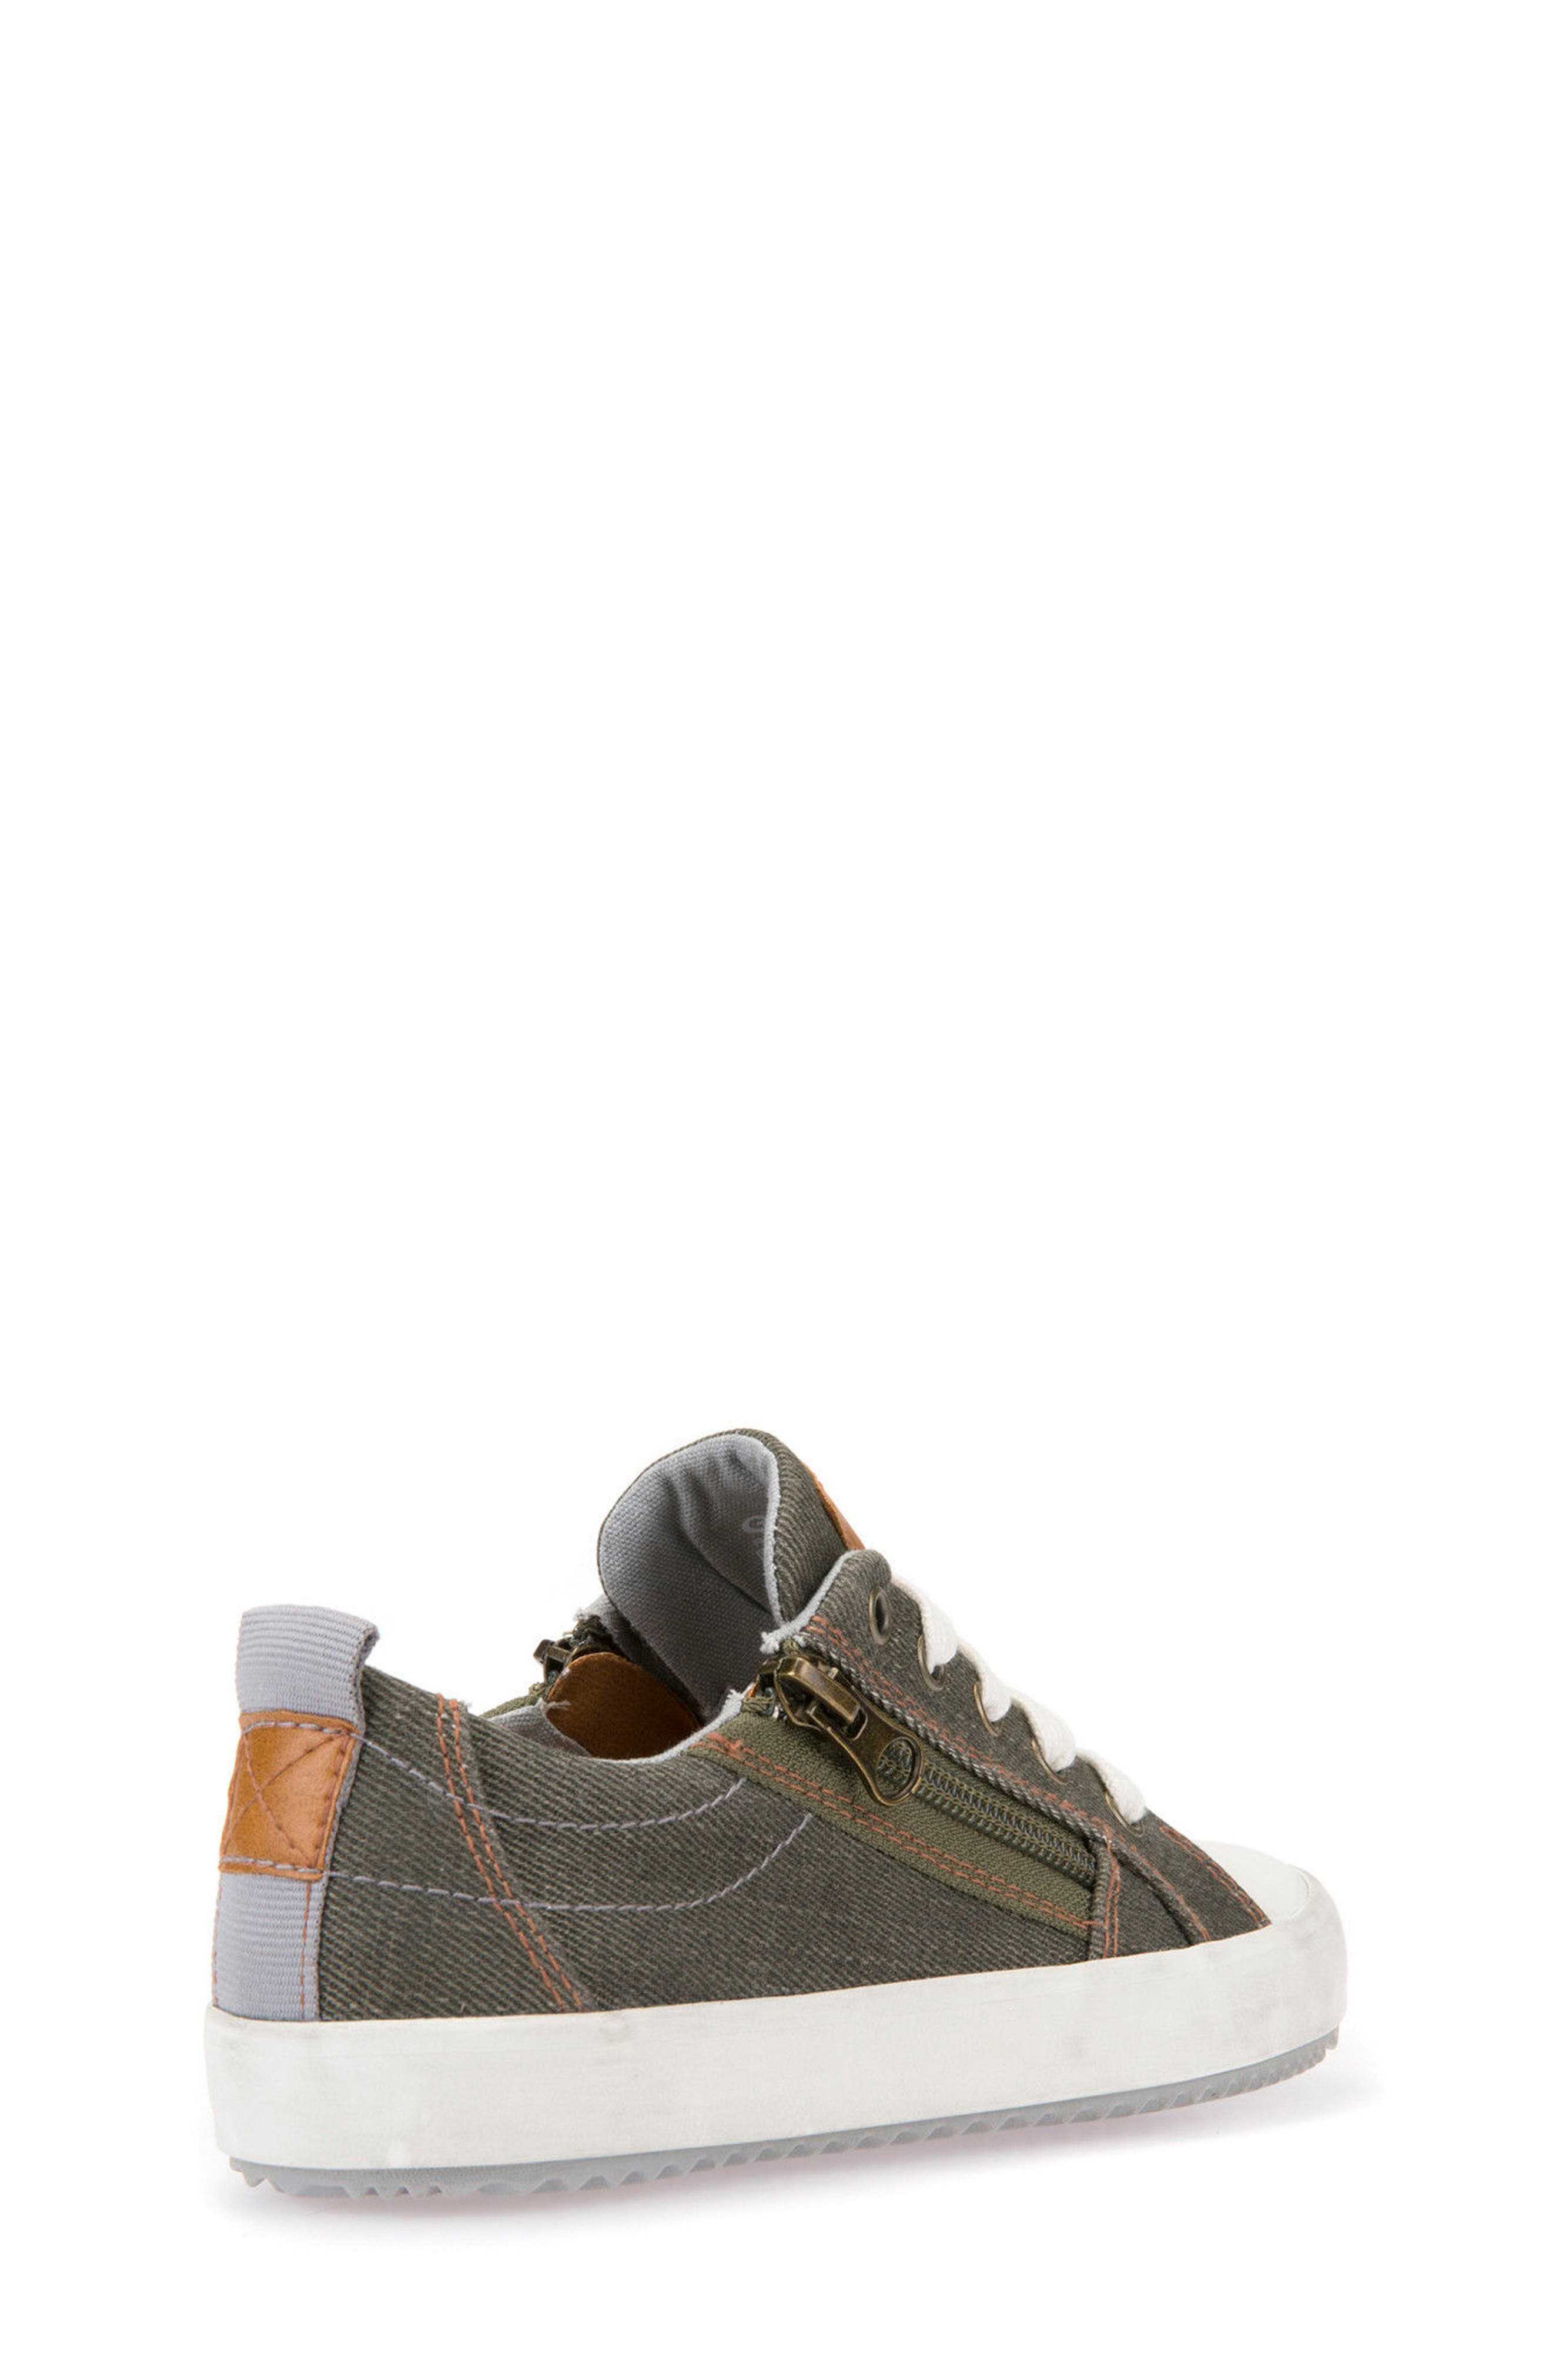 Alonisso Low Top Sneaker,                             Alternate thumbnail 2, color,                             MILITARY/ GREY